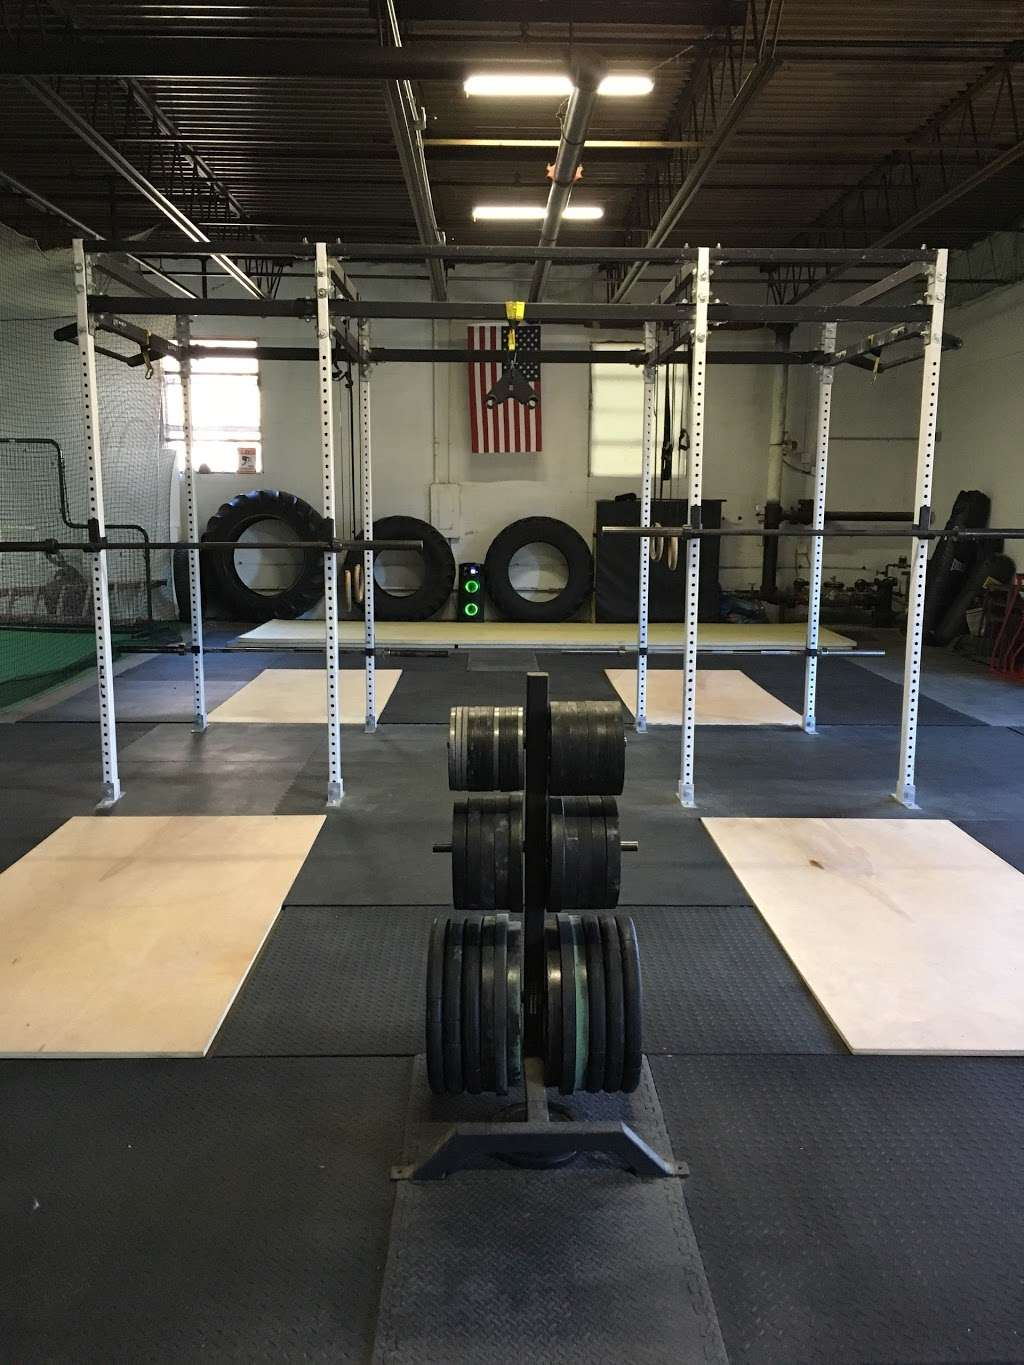 Out of Body Fitness - gym  | Photo 1 of 10 | Address: 303 N 4th St # B, St. Charles, IL 60174, USA | Phone: (630) 440-7993